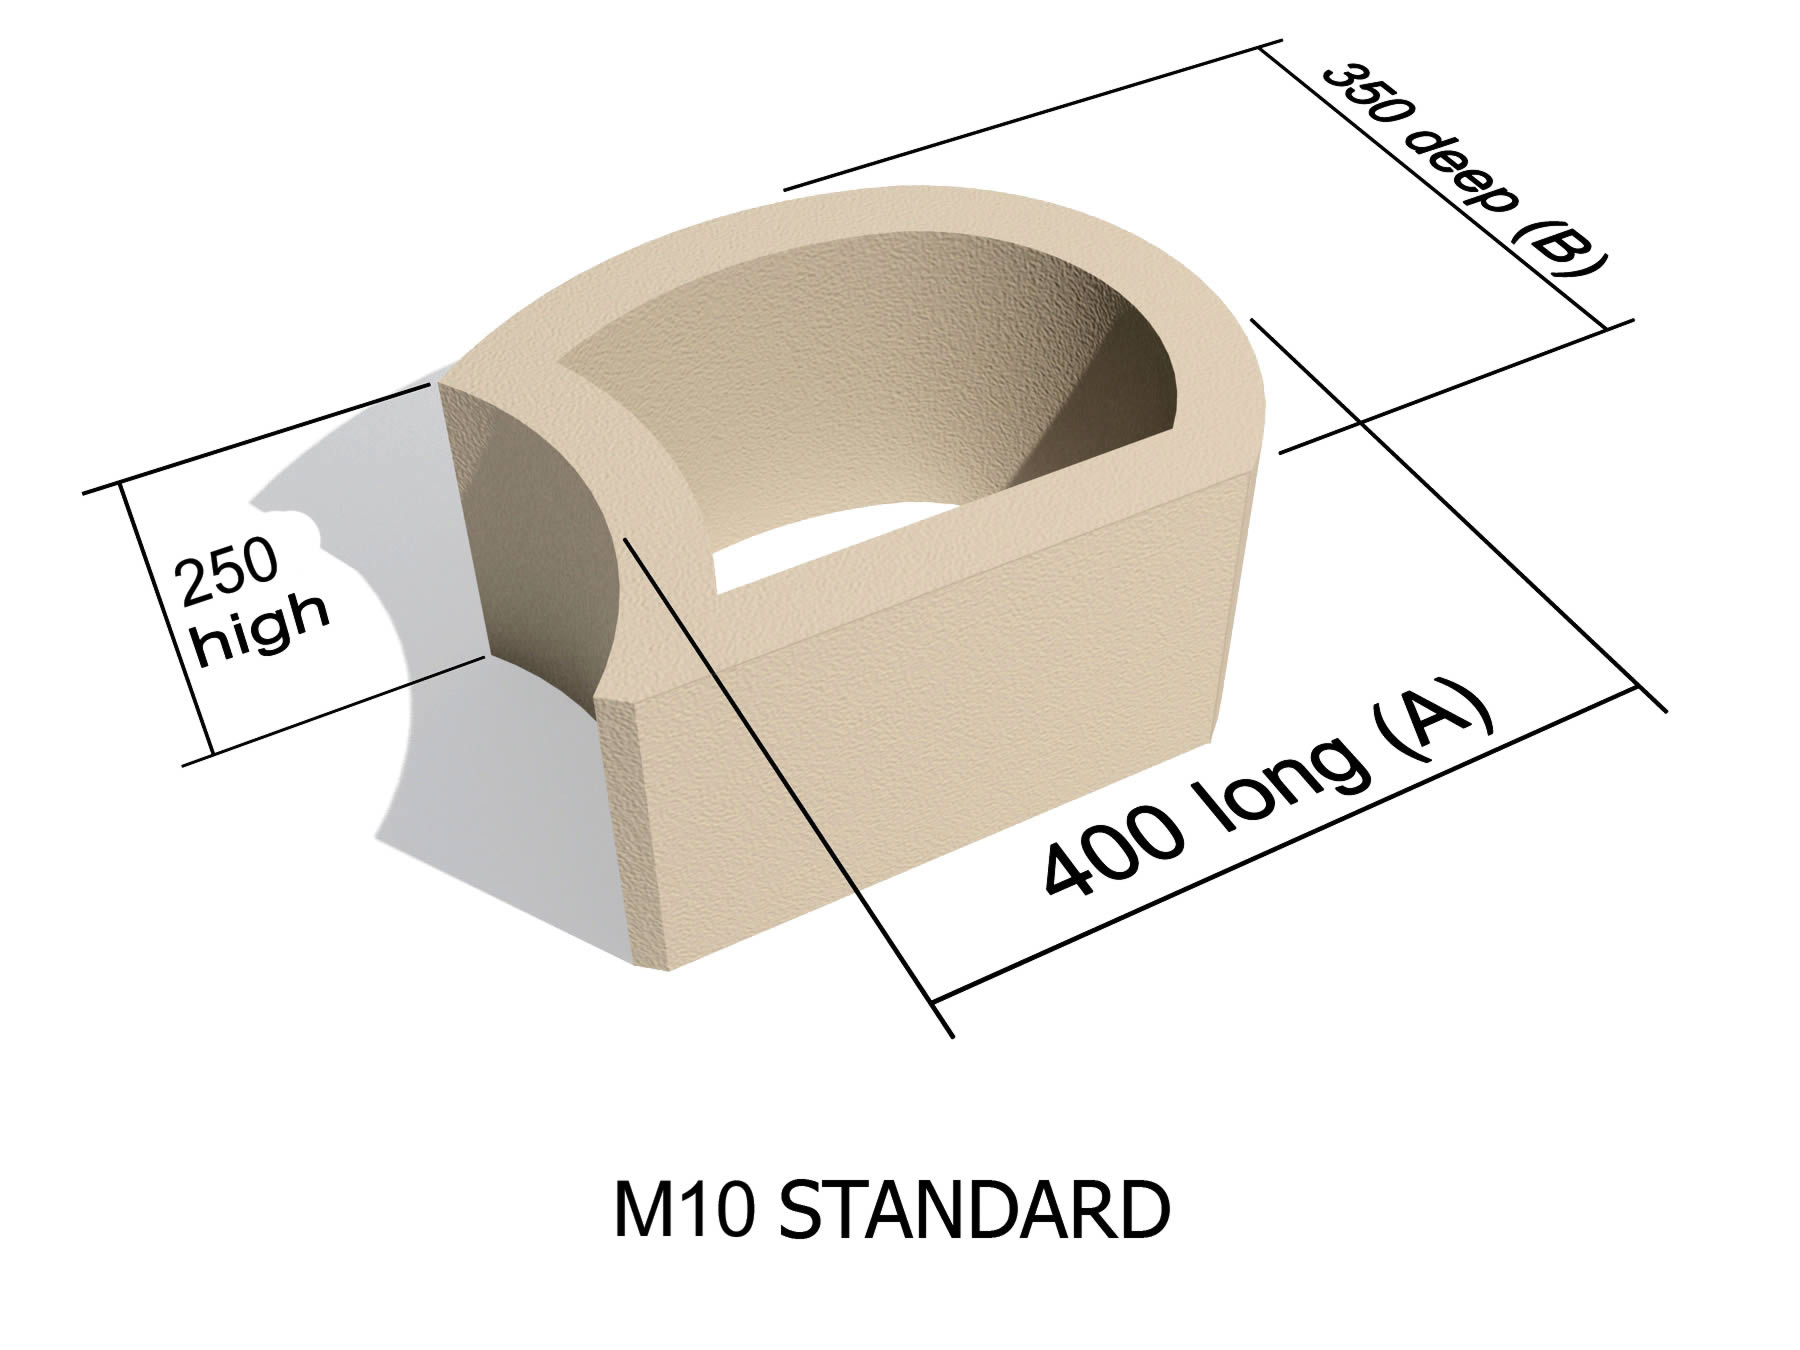 M10 smooth face retaining block